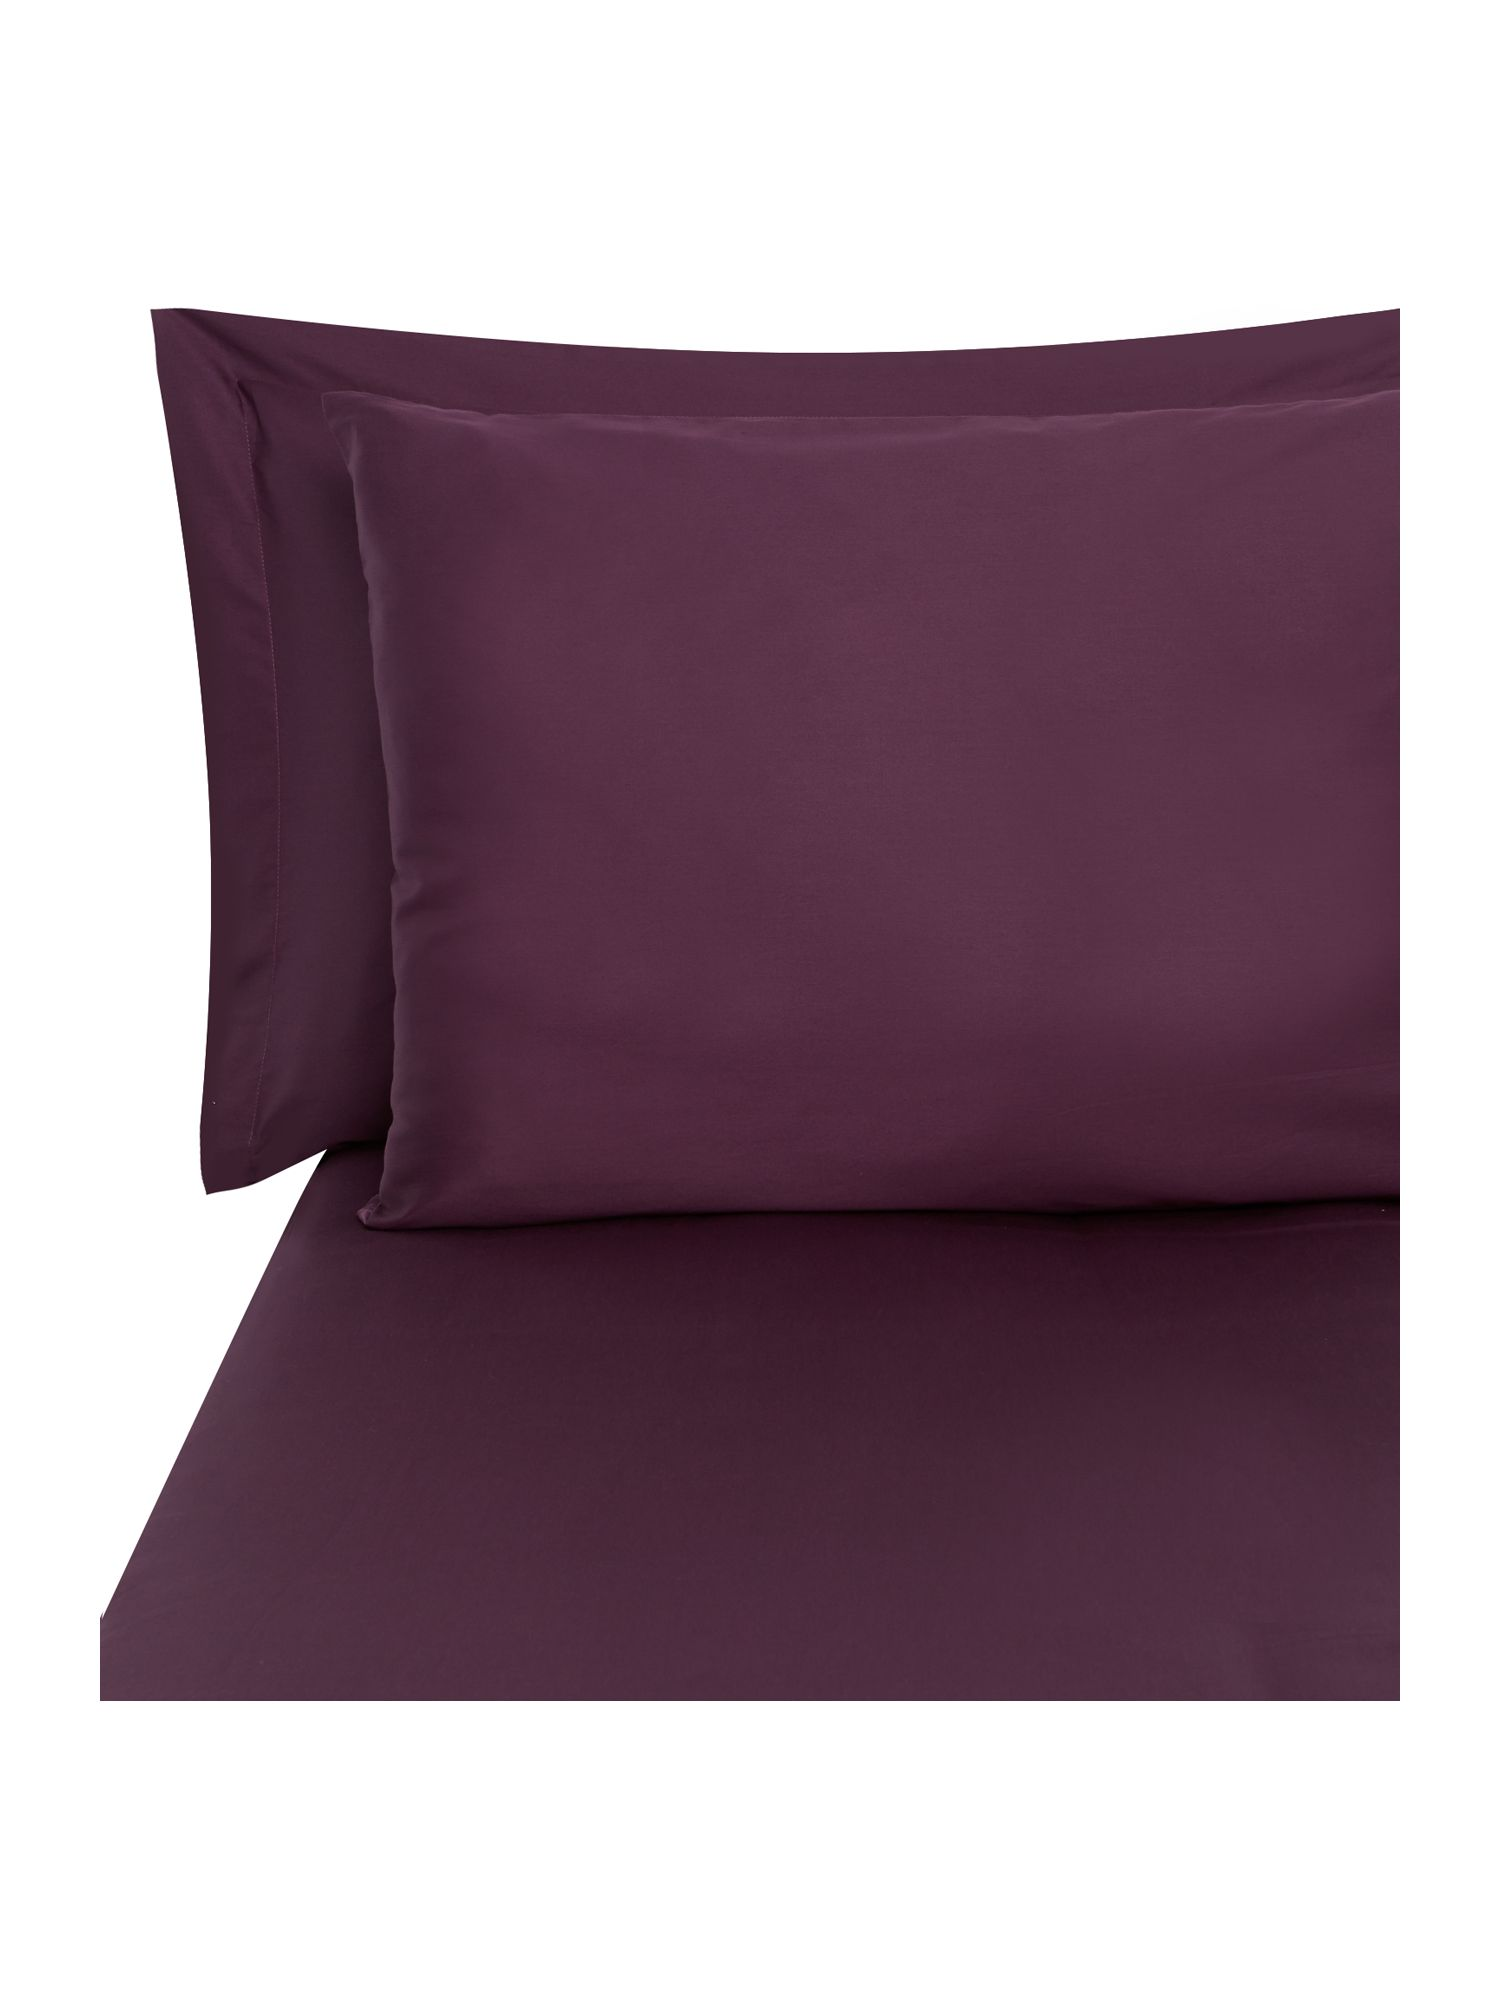 Plain dye bed linen in amethyst